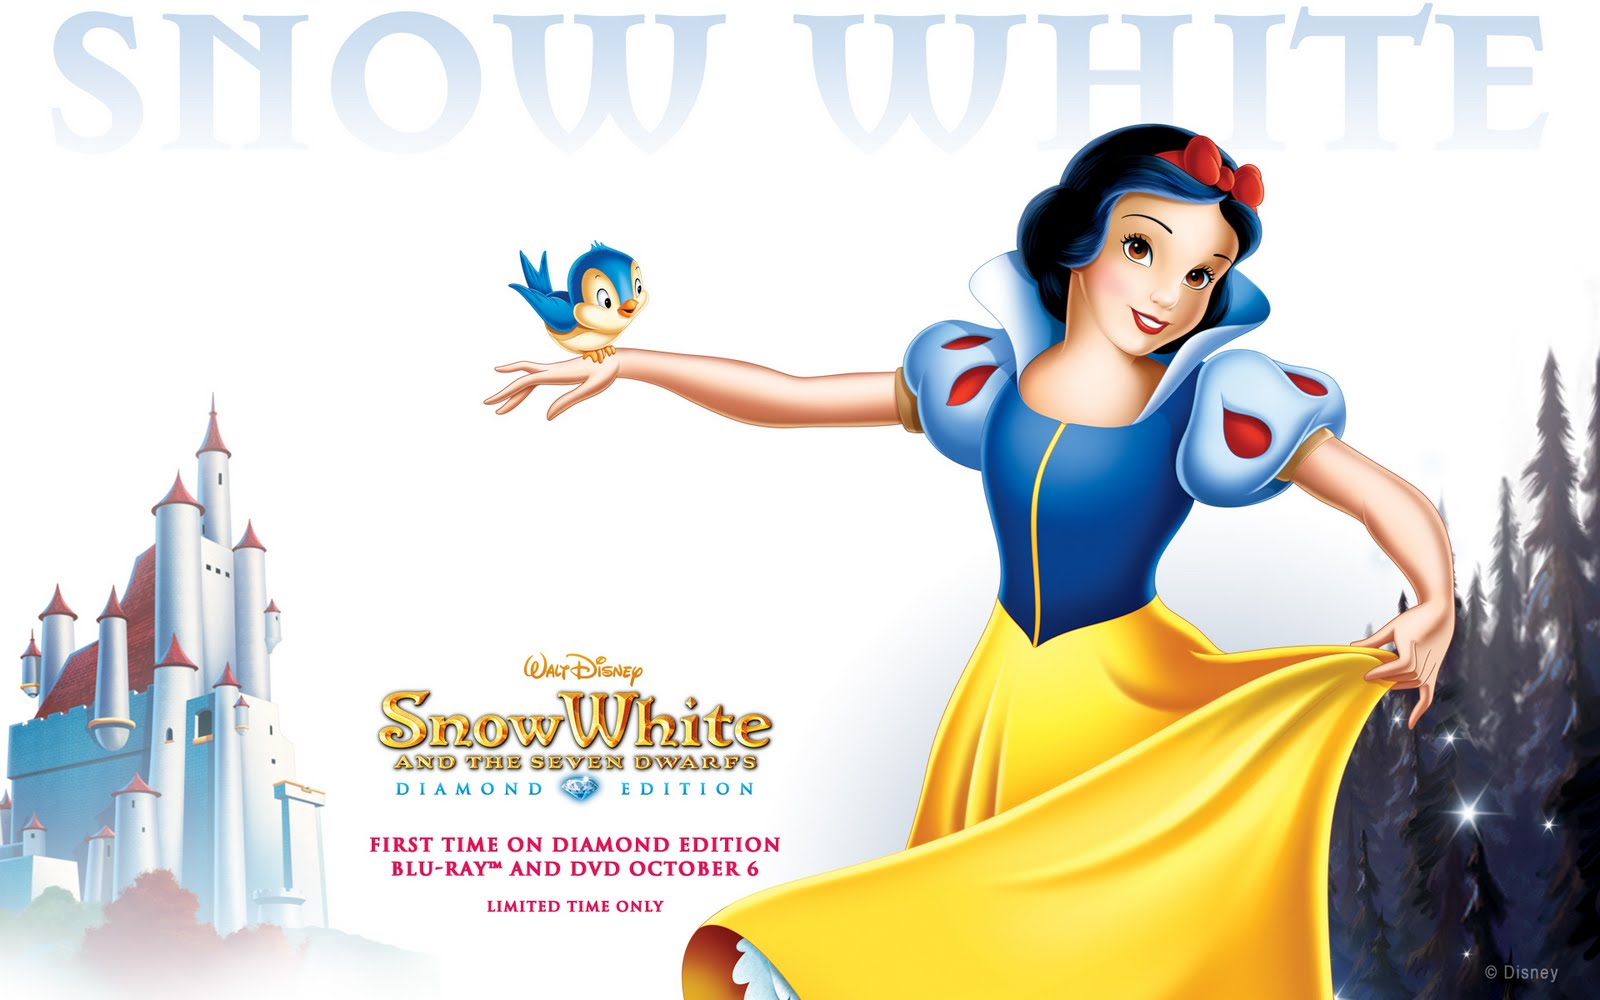 filmic light - snow white archive: 2009 diamond edition - desktop